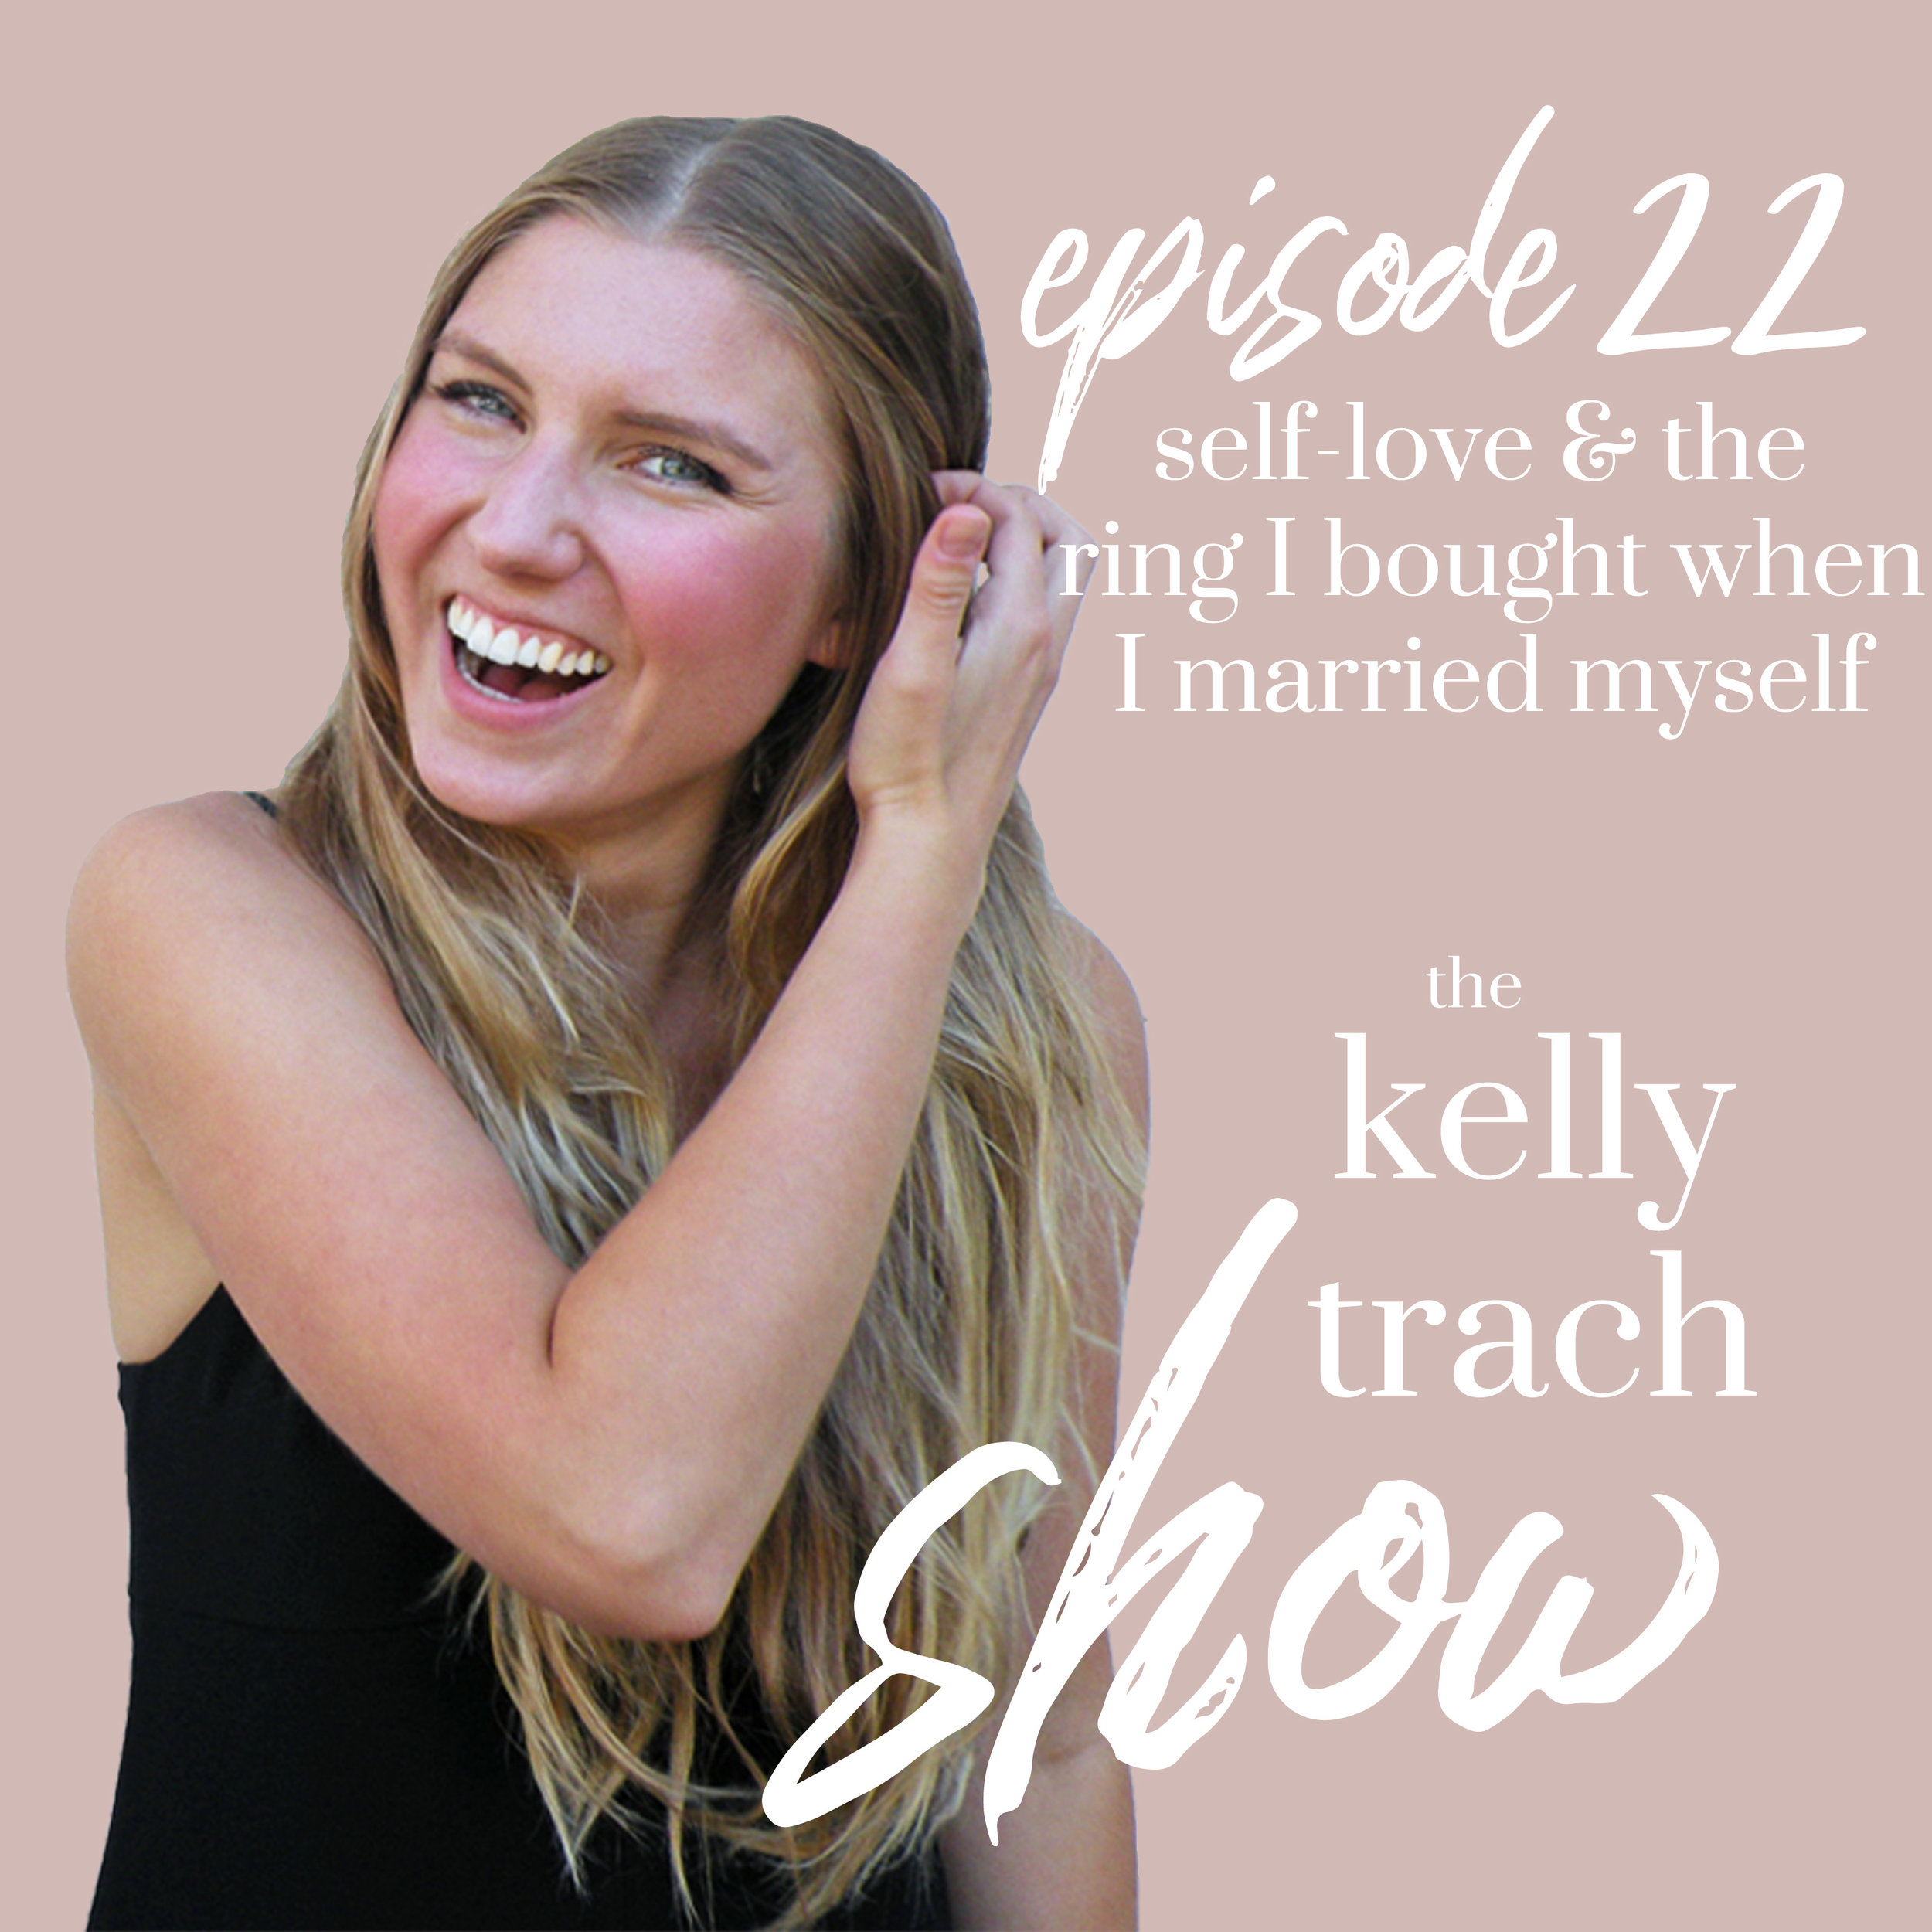 22 - Self-Love & The Ring I Bought When I Married Myself - The Kelly Trach Show.jpg